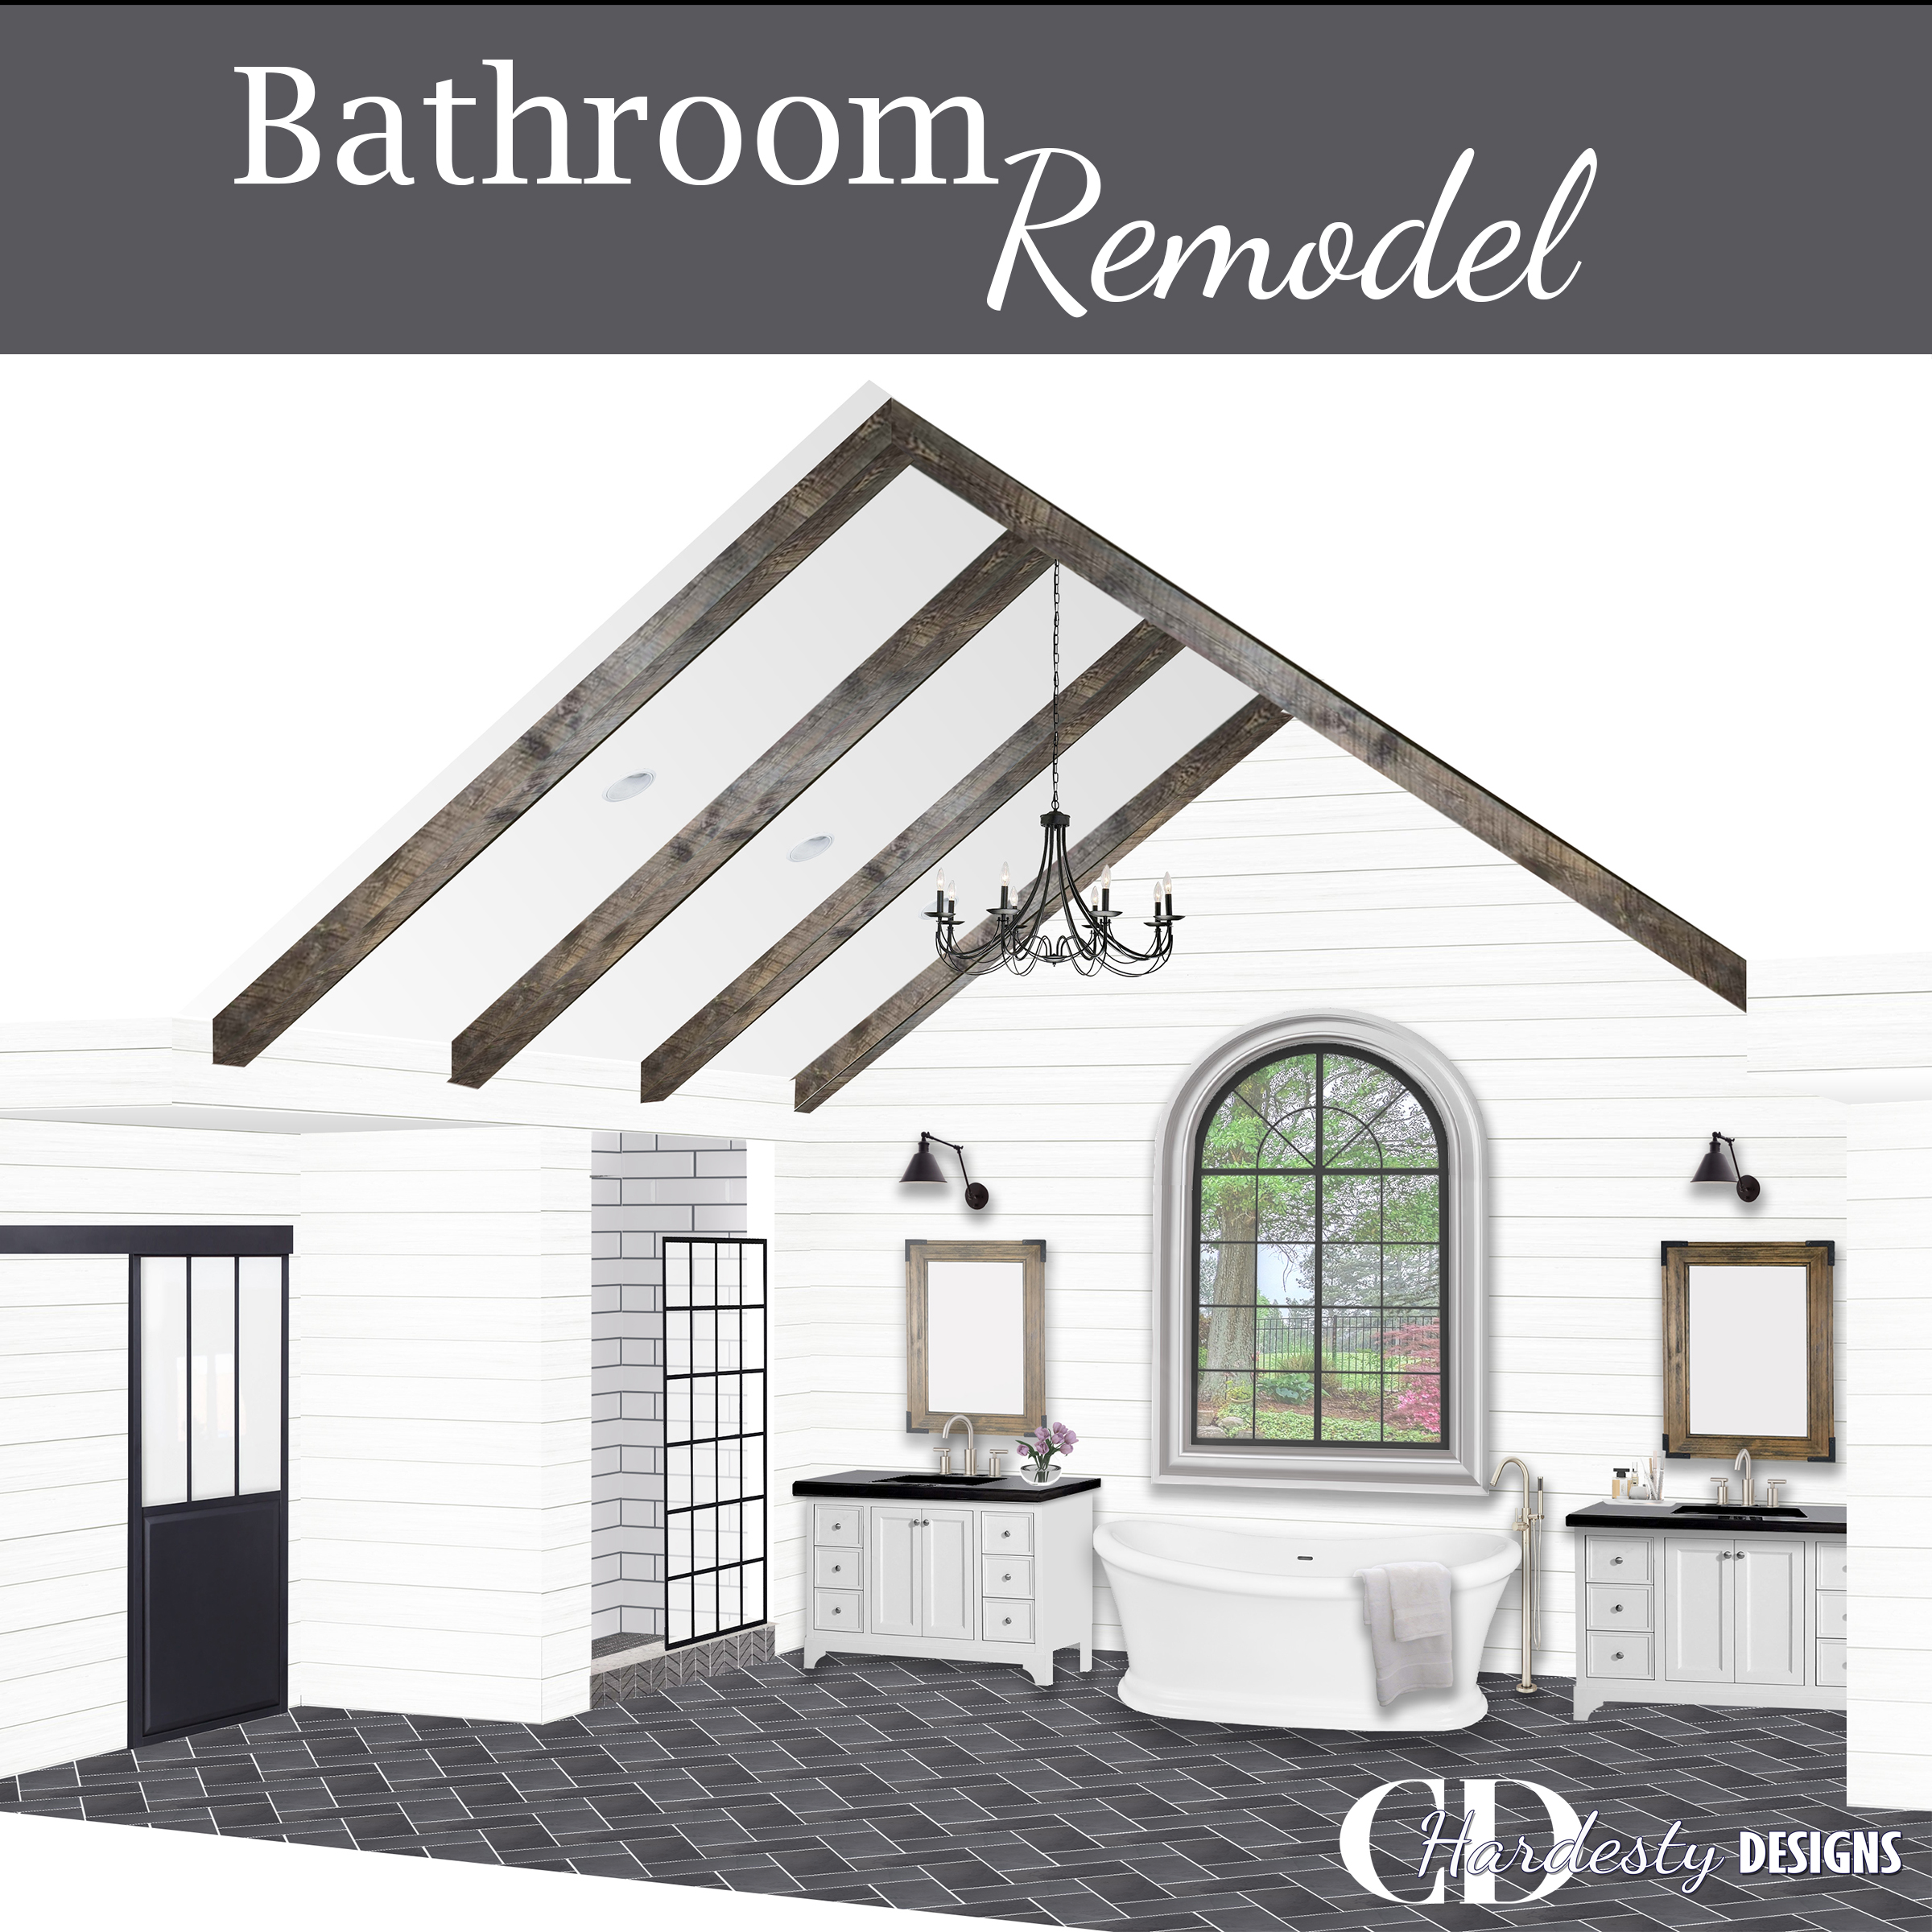 3D rendering of a modern farmhouse styled bathroom remodel